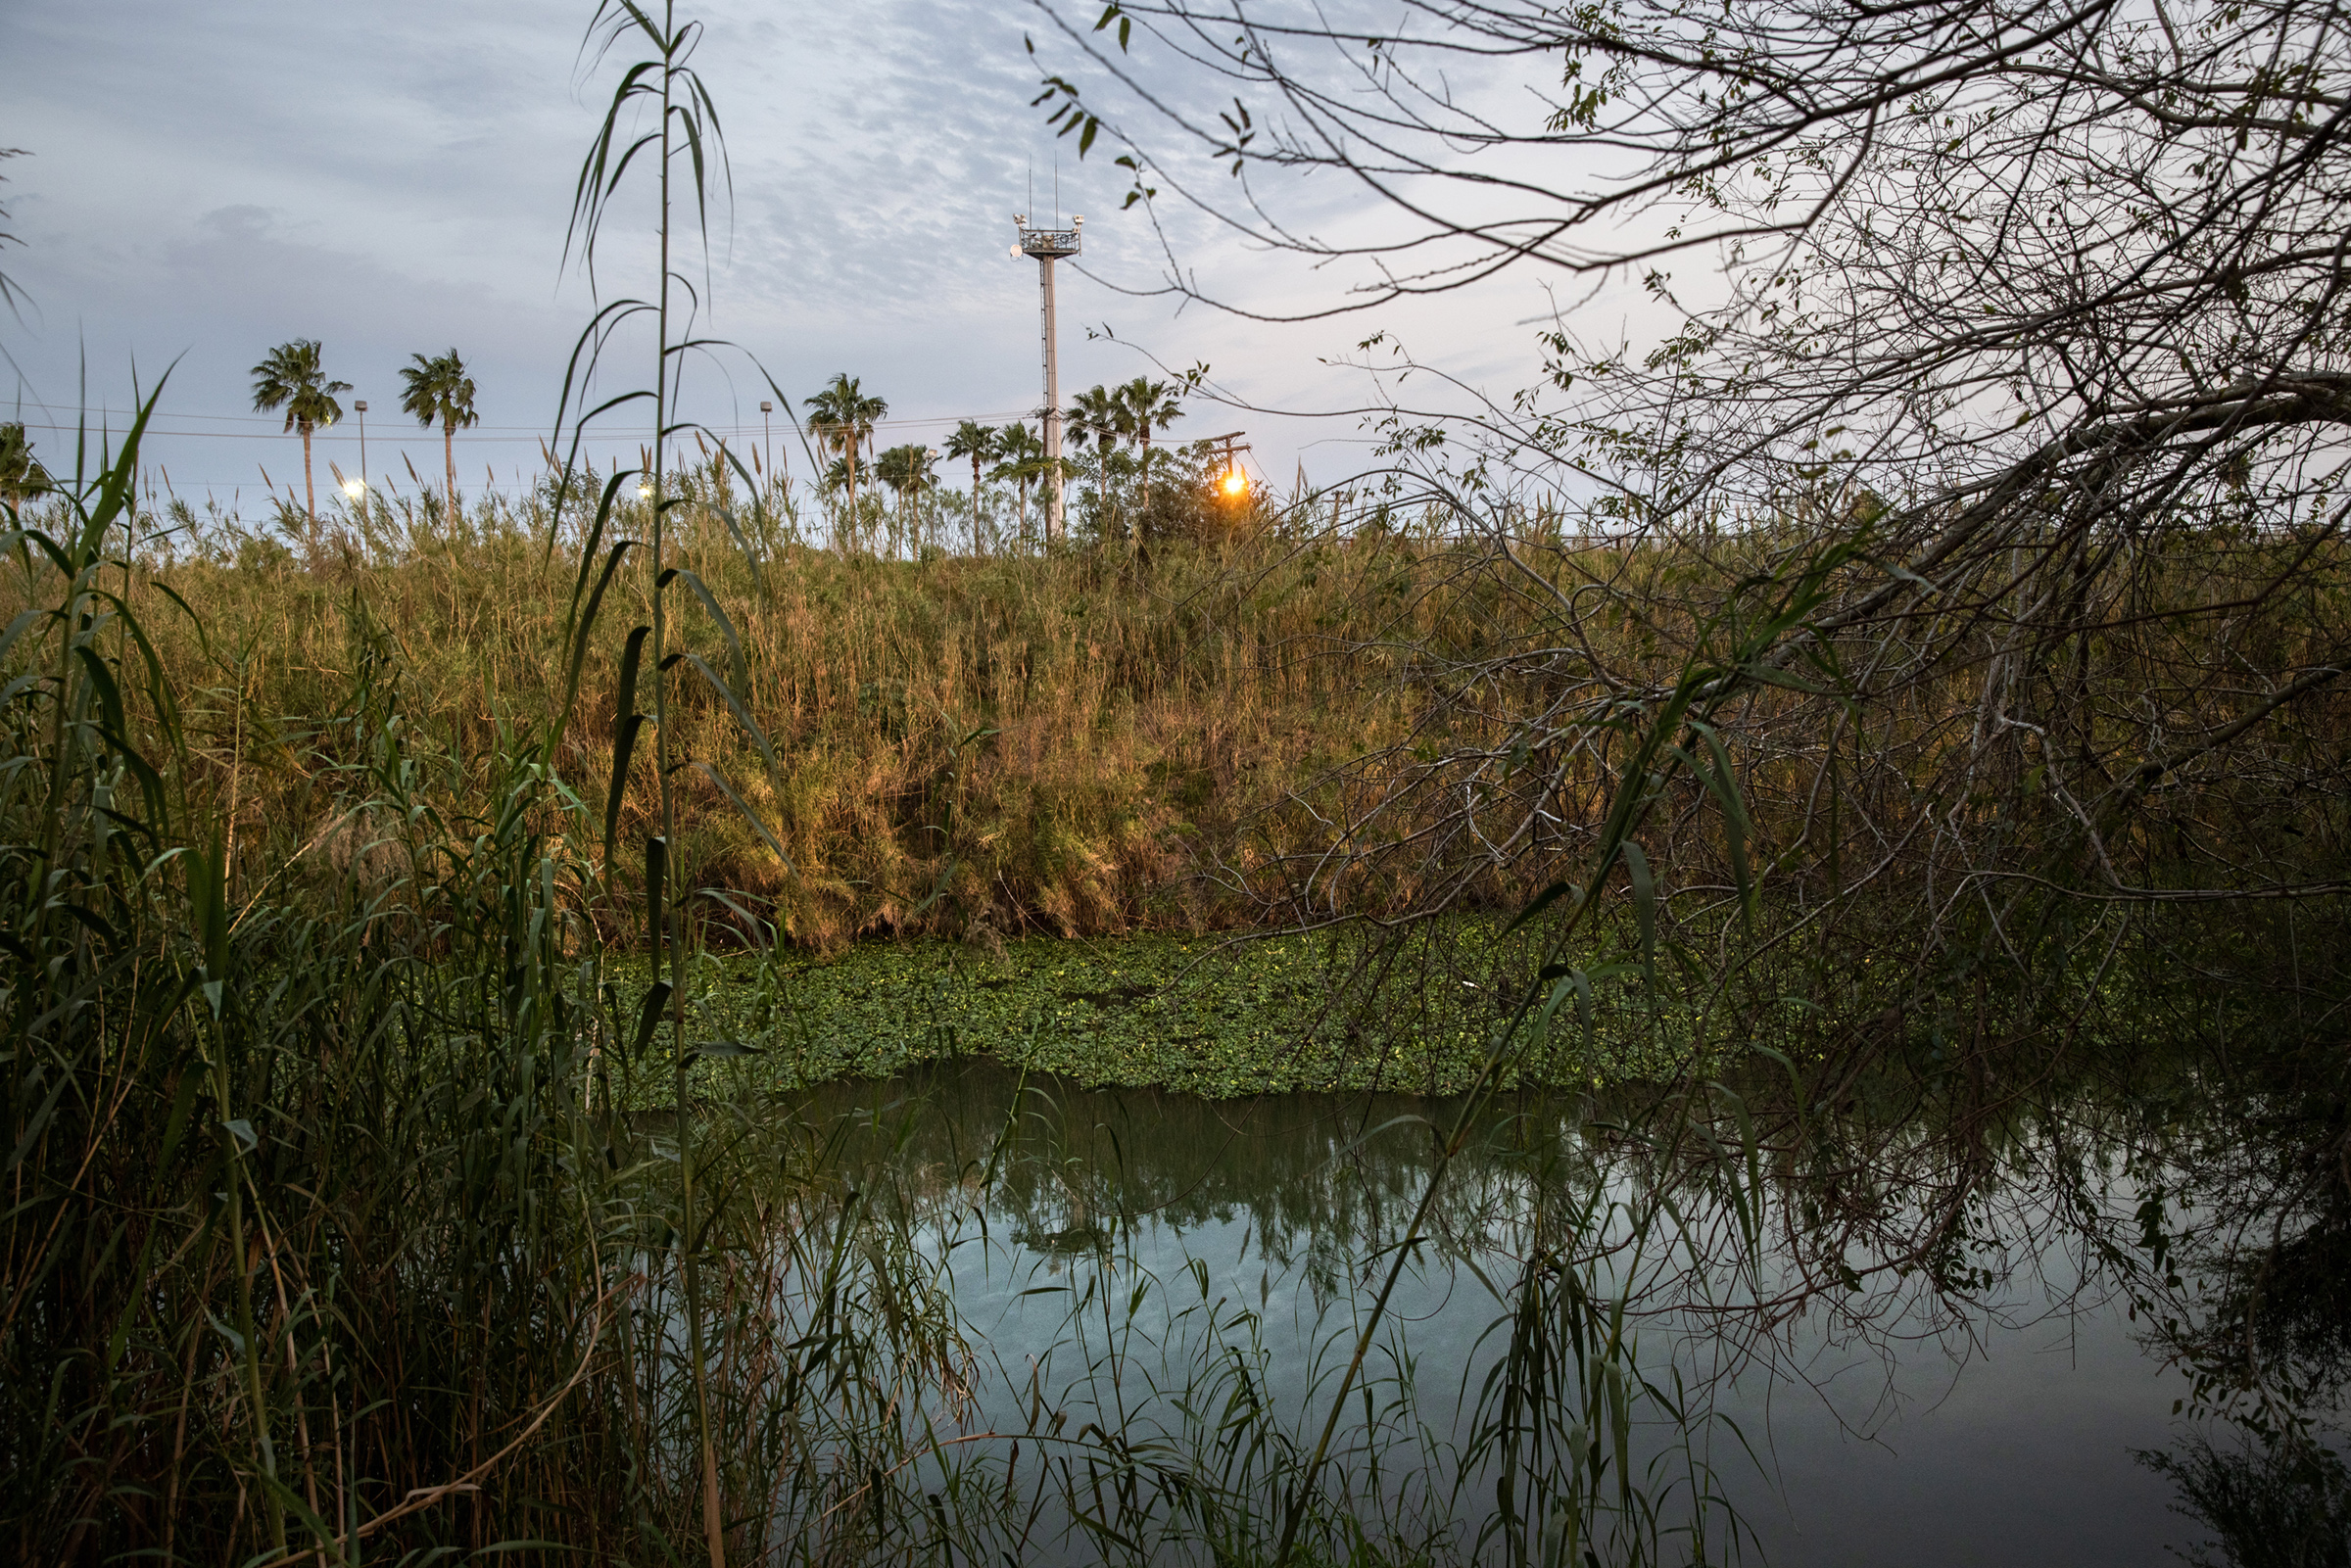 A U.S. Border Patrol surveillance tower stands on the other side of the Rio Grande in Matamoros, Mexico, on Feb. 7, 2021.